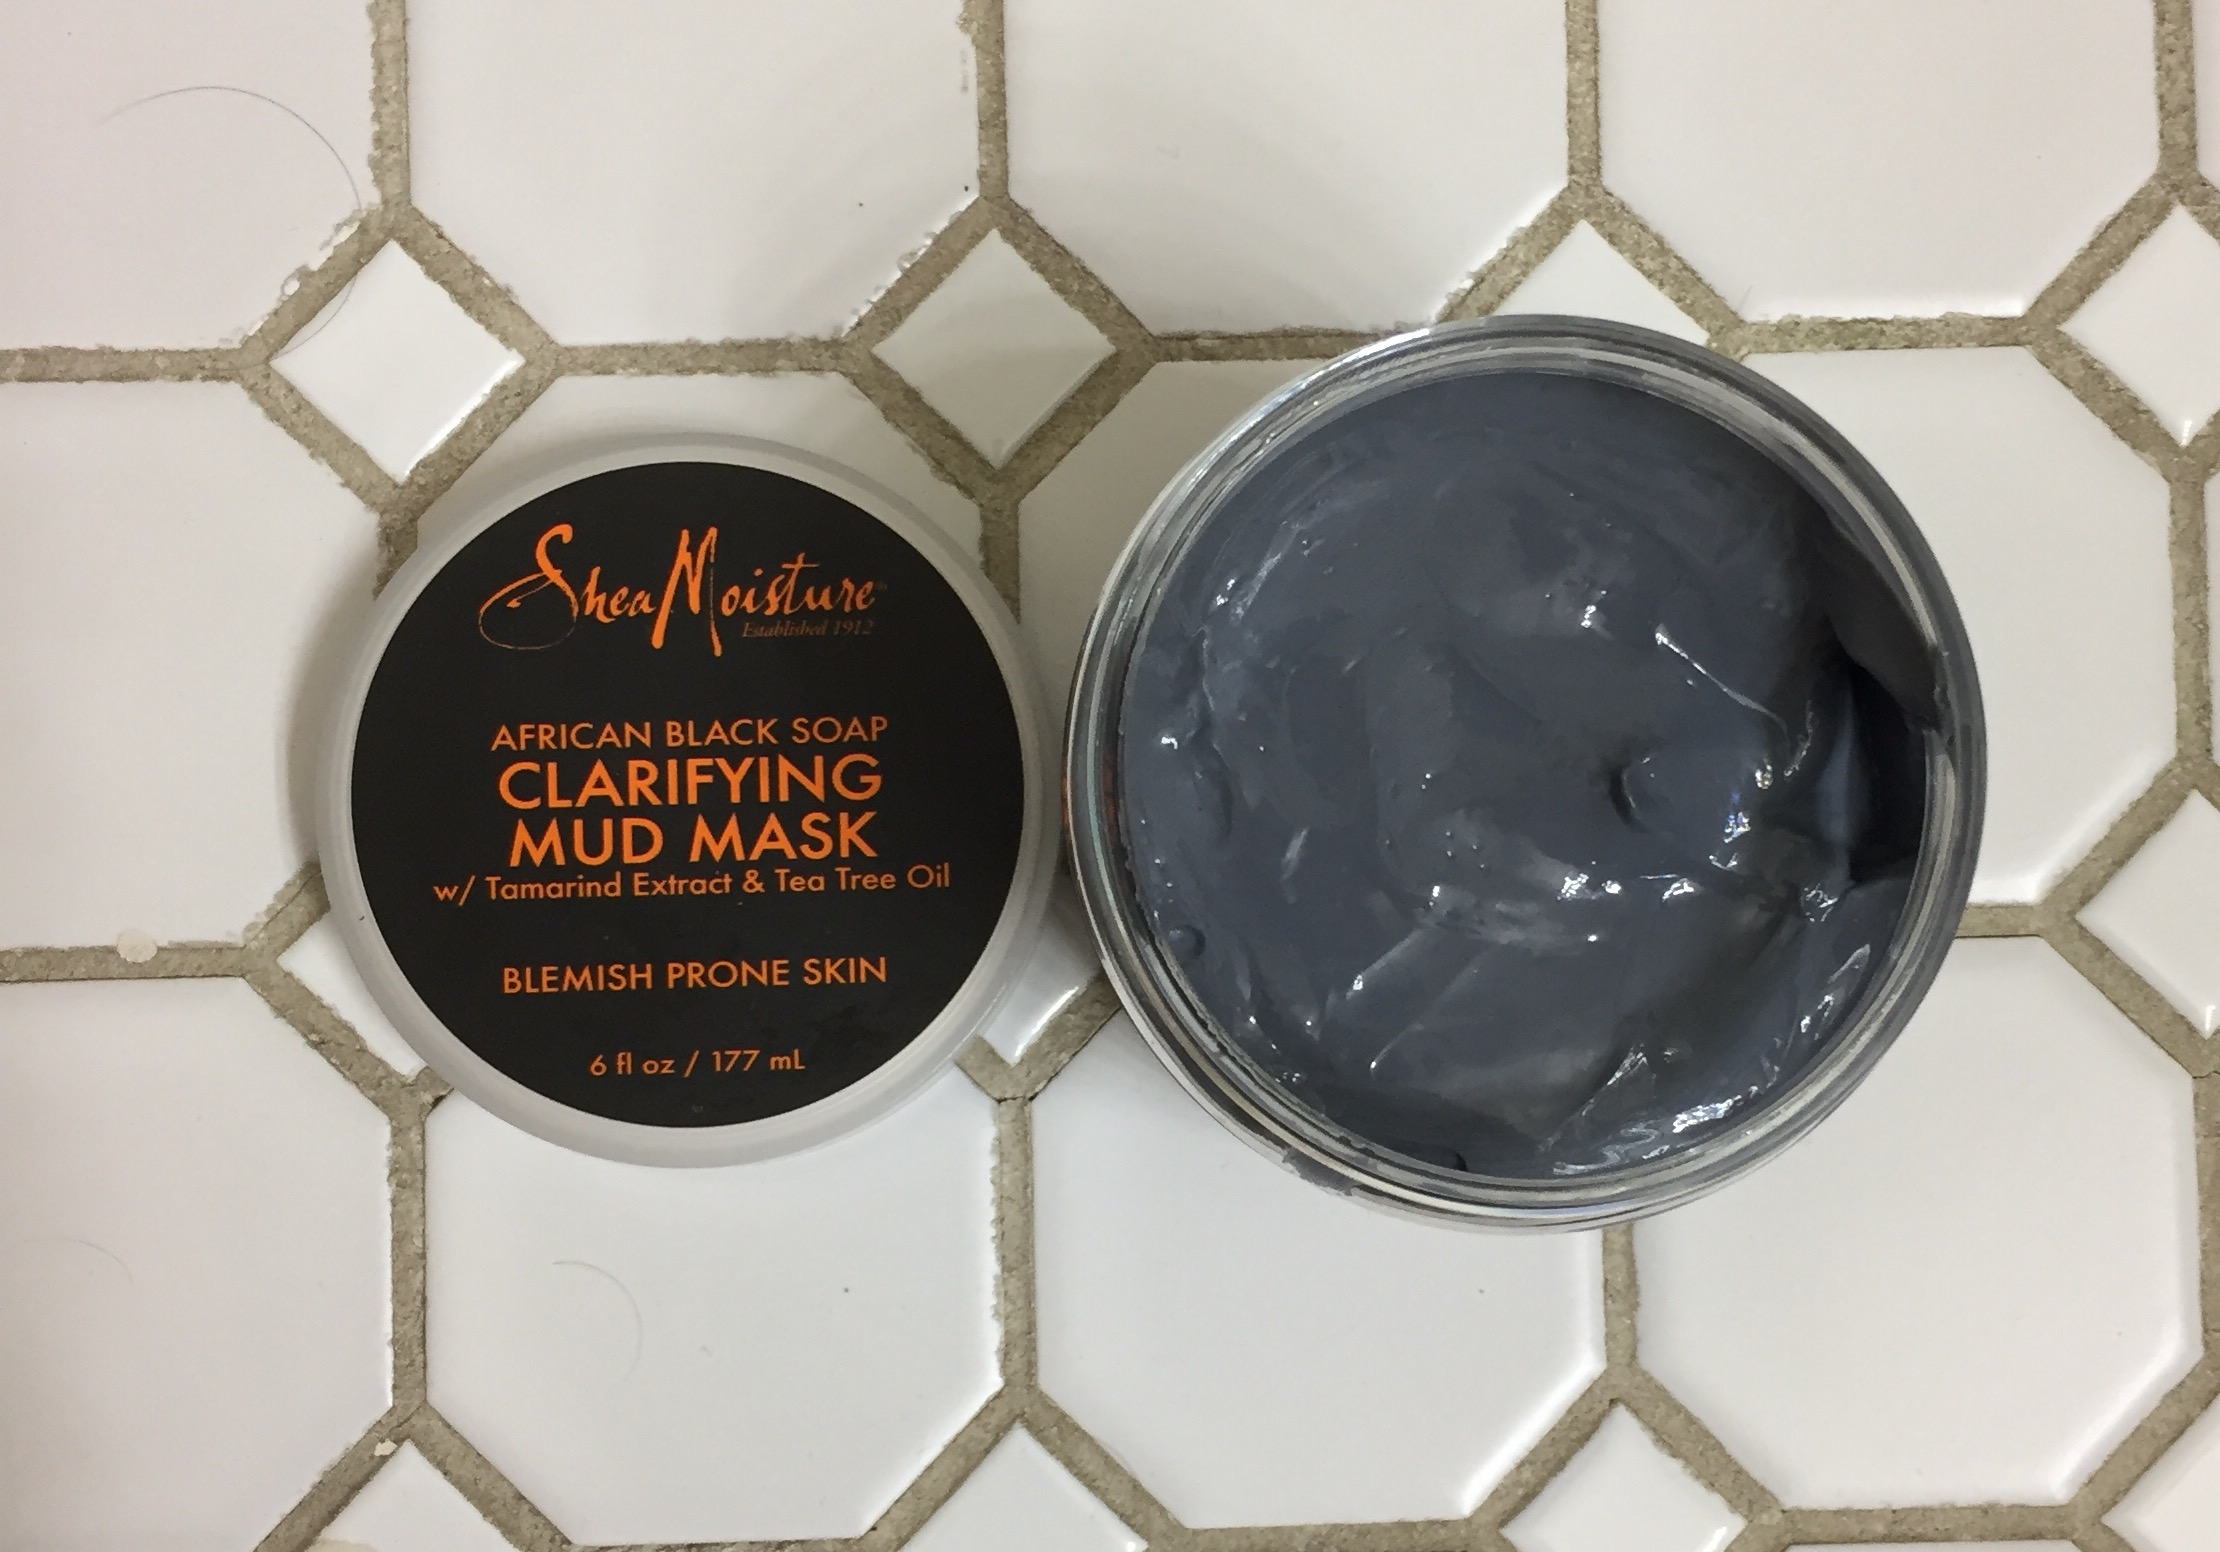 African Black Soap Clarifying Mud Mask by SheaMoisture #16